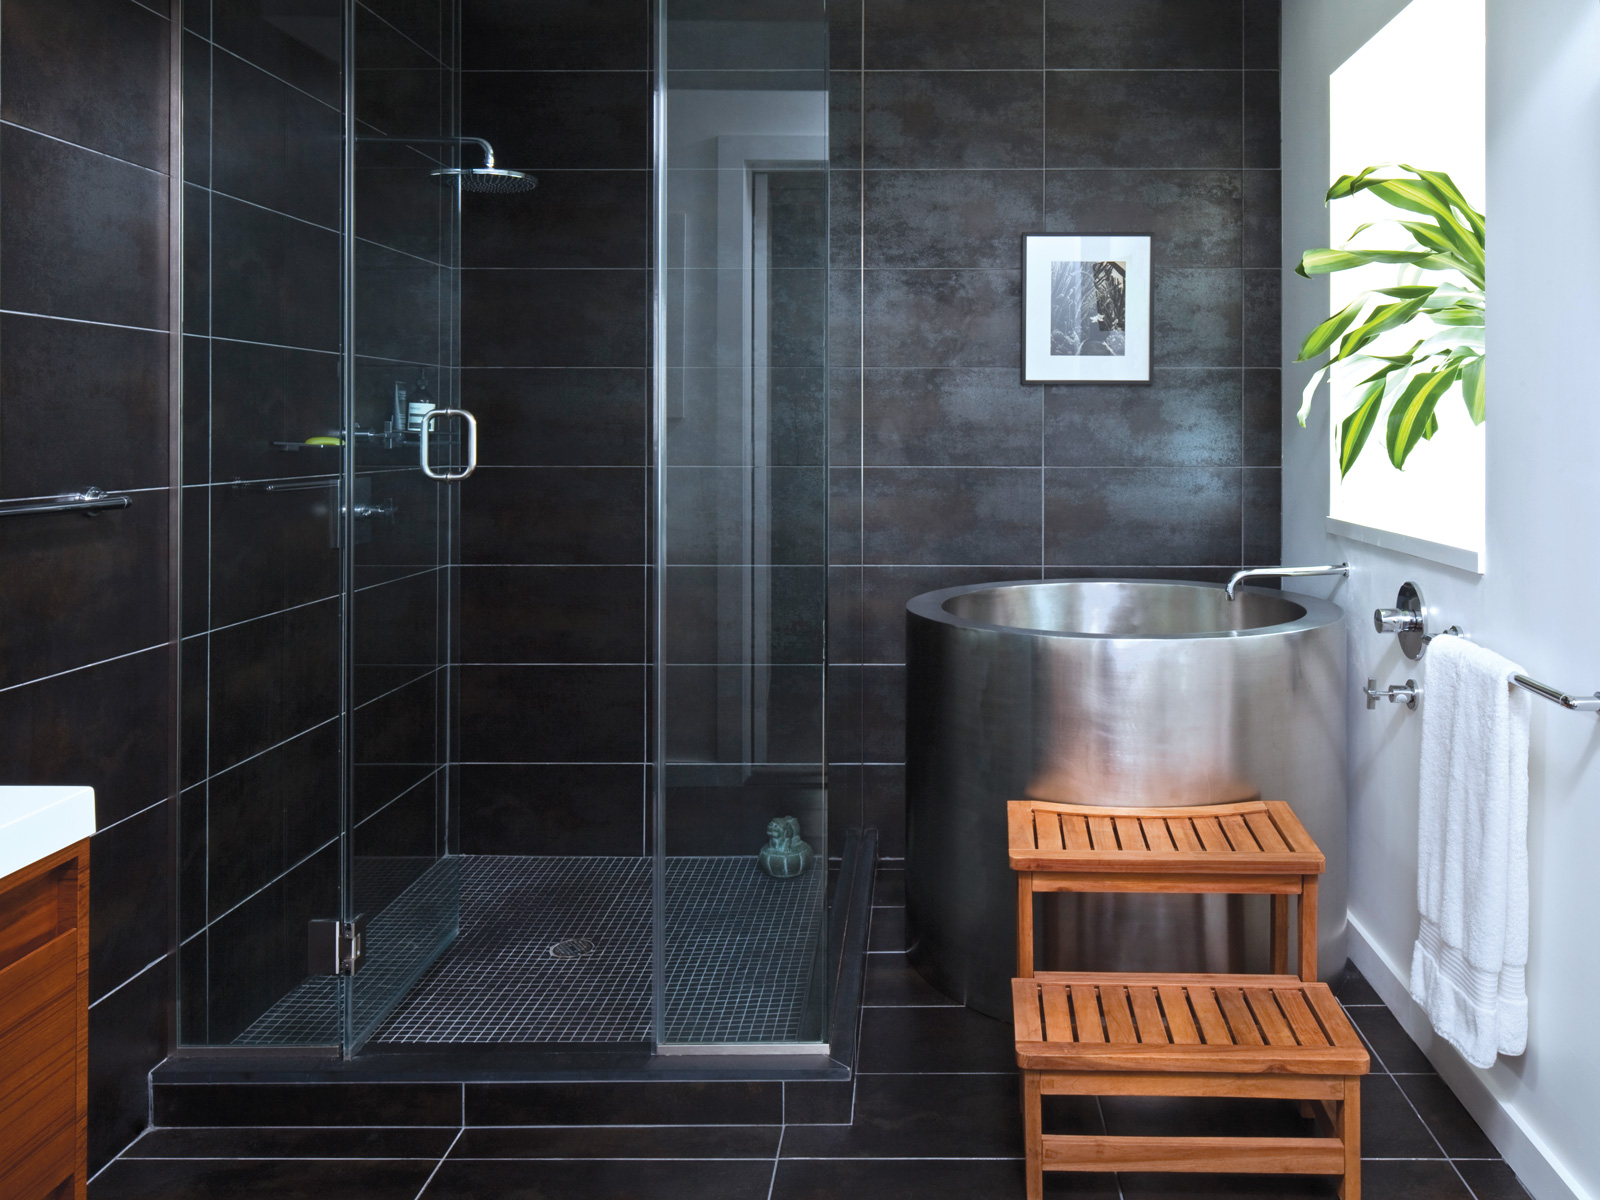 A Japanese soaking tub pops against dark slate tiles in the master bath.